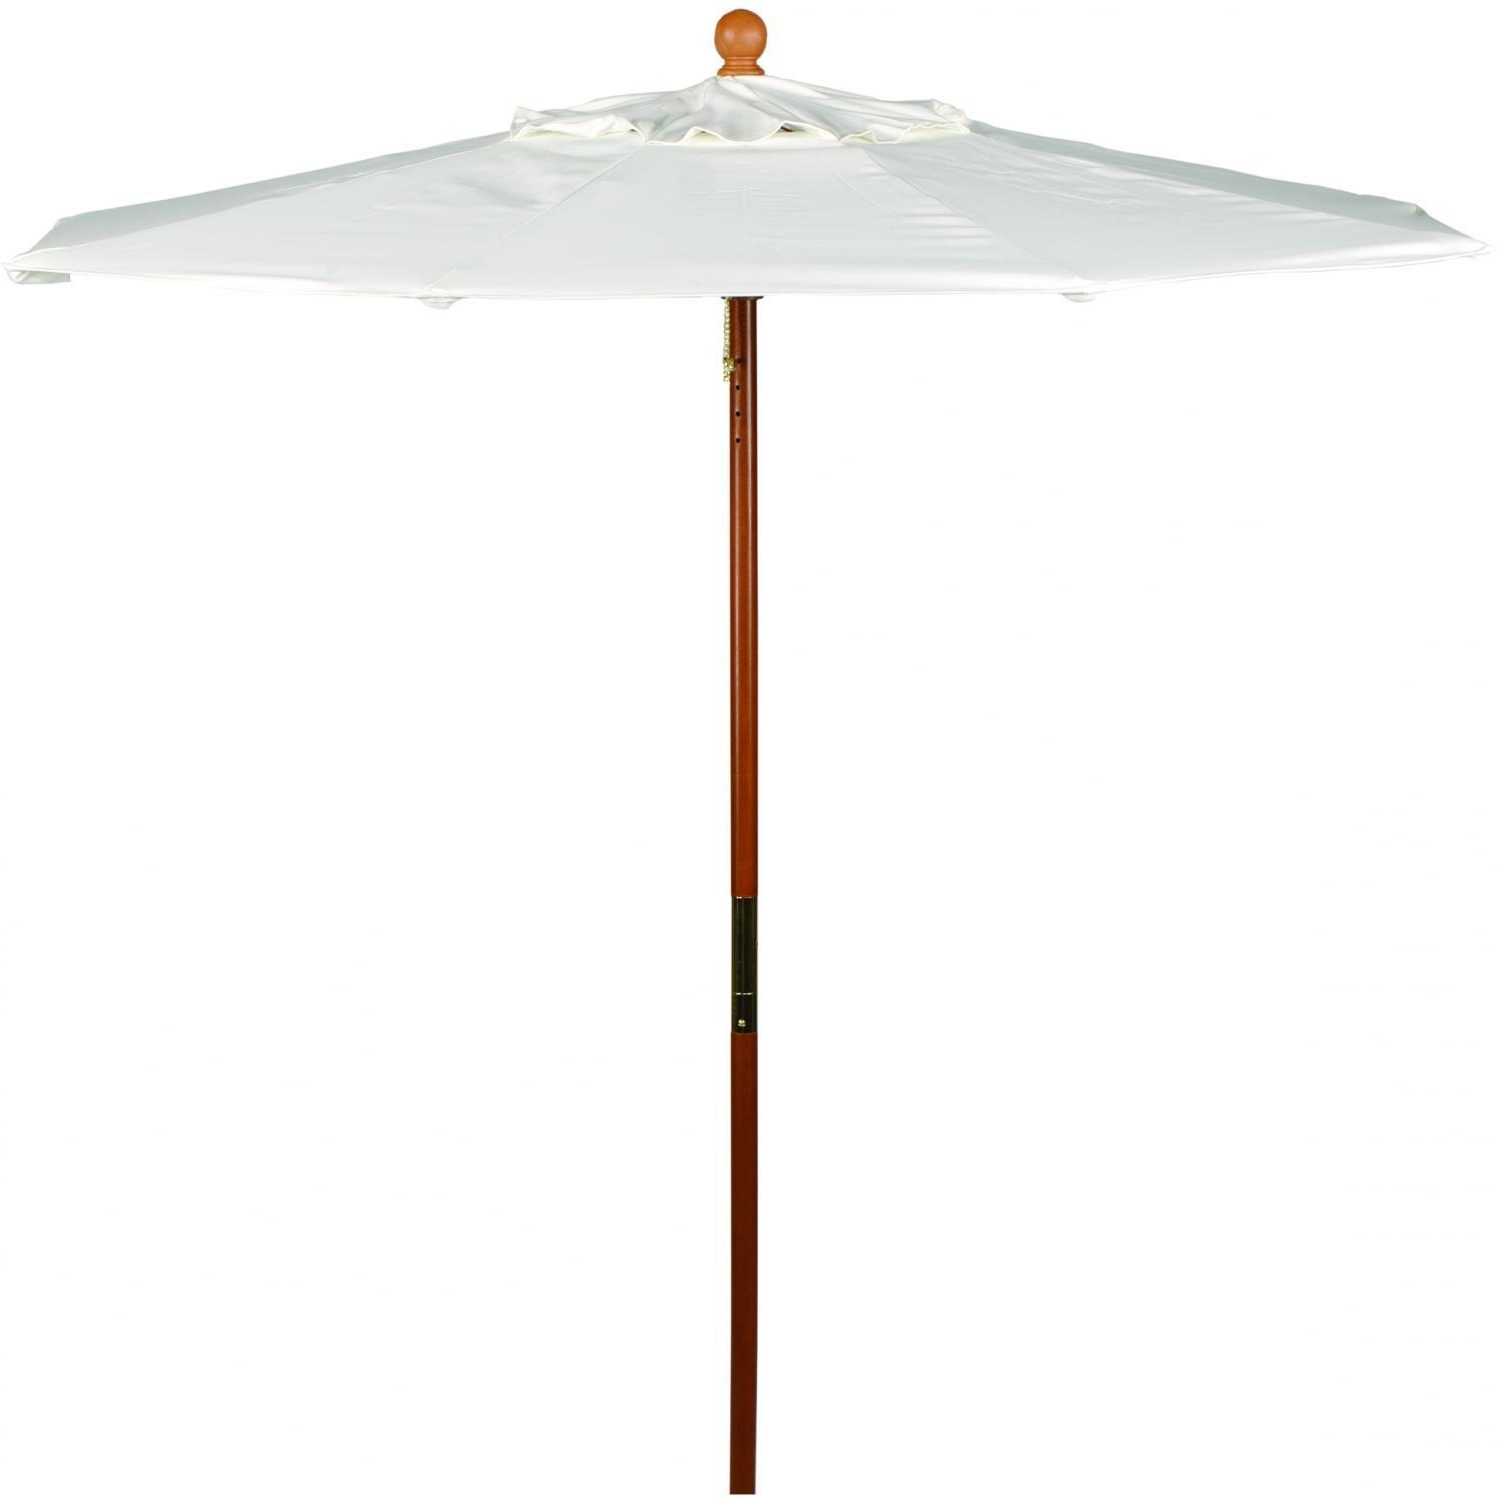 Most Recently Released Jewel Patio Umbrellas For 49 6 Foot Patio Umbrellas, 6#039; Patio Umbrellas Market Umbrellas (View 20 of 20)